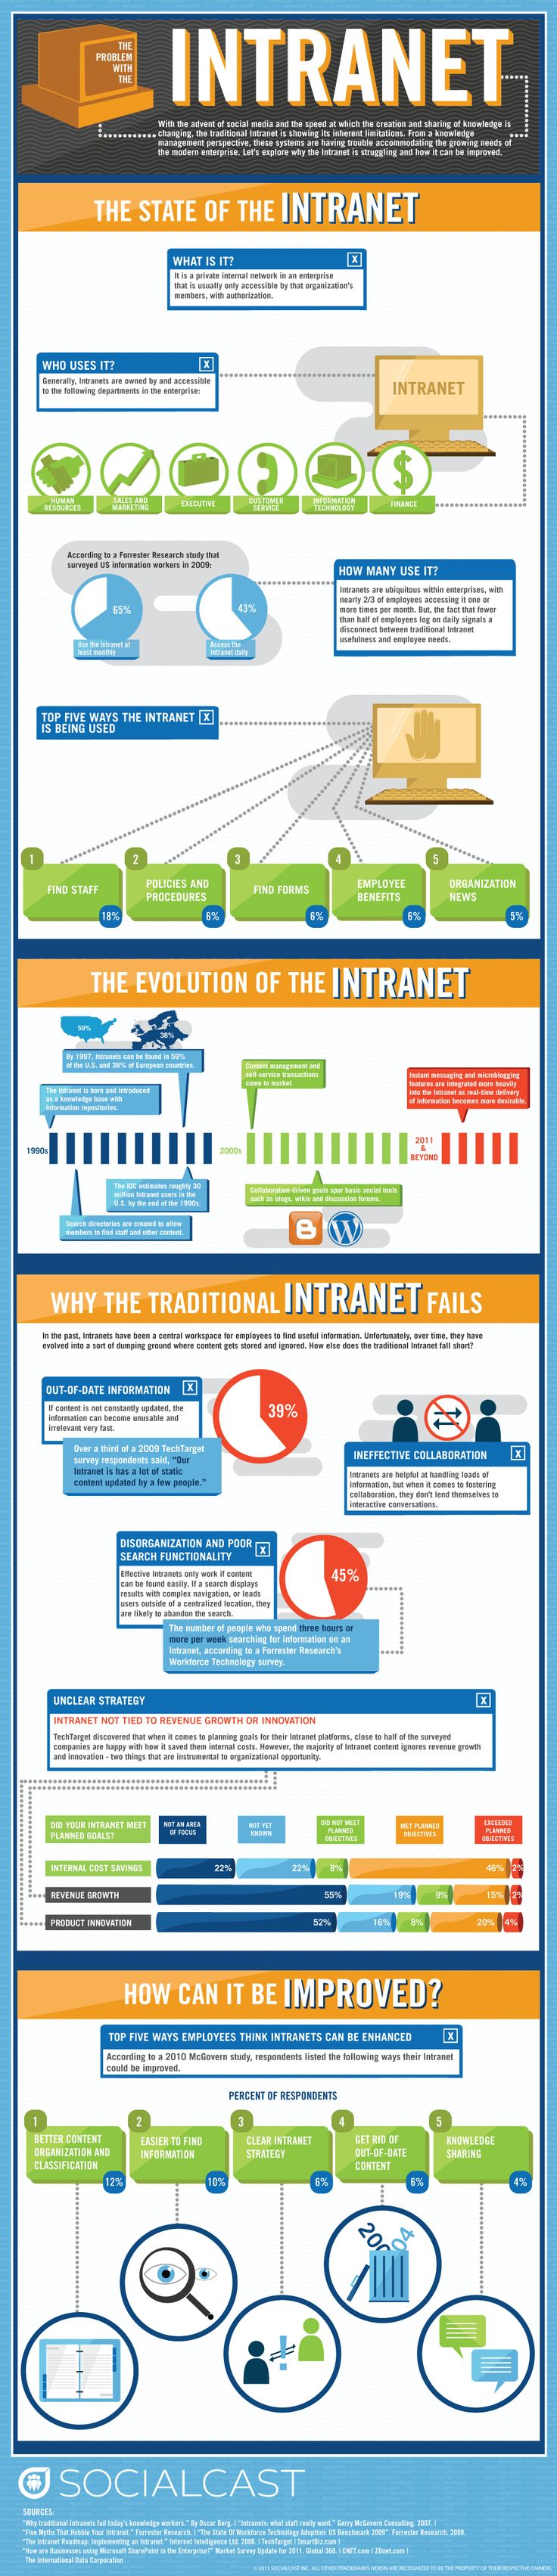 The state of the intranet